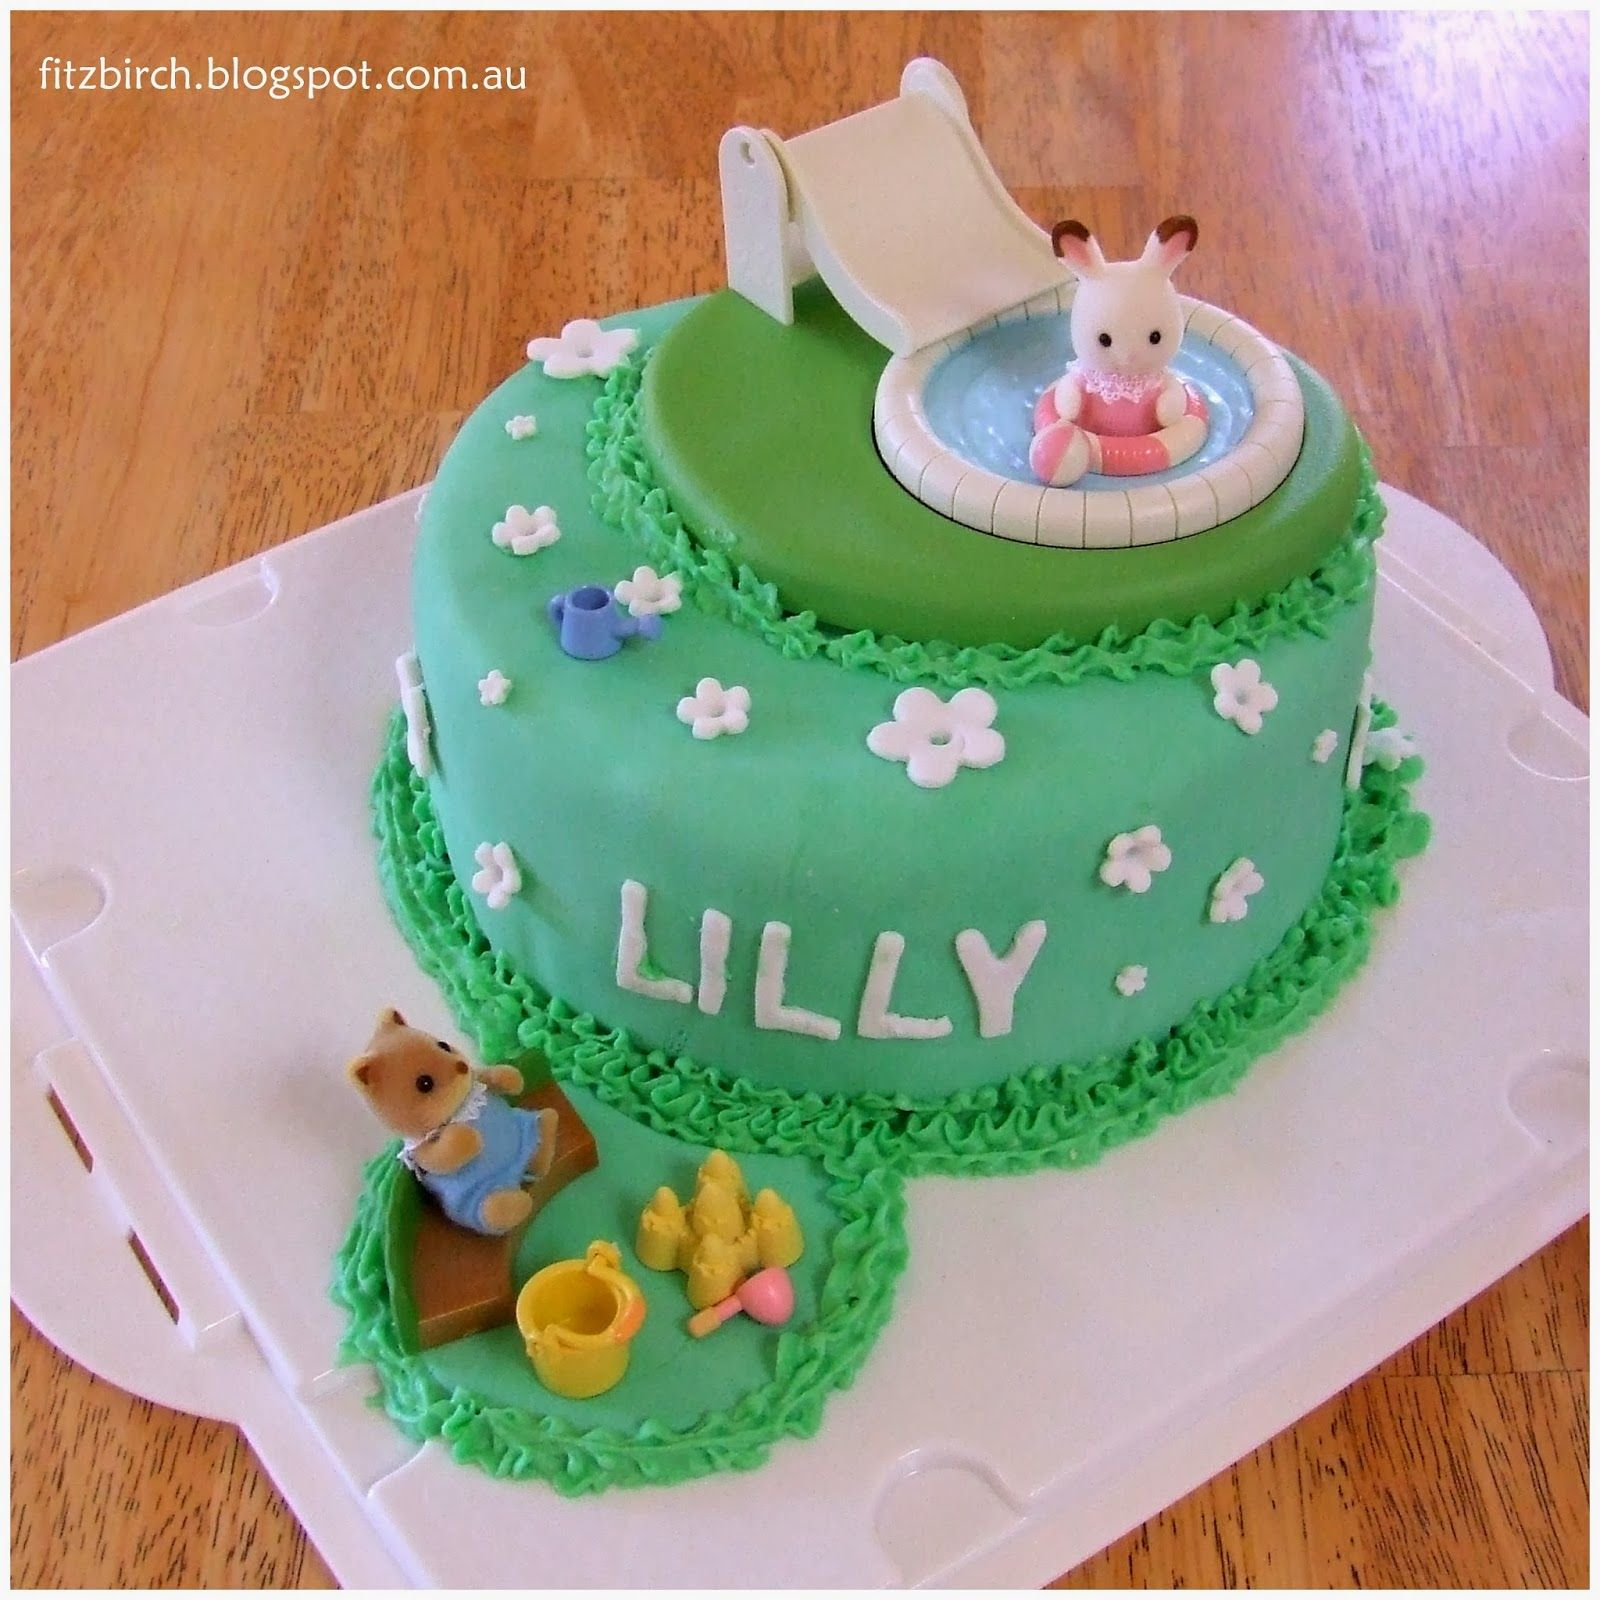 Sylvanian Families Calico Critters Cake so cute Creativity